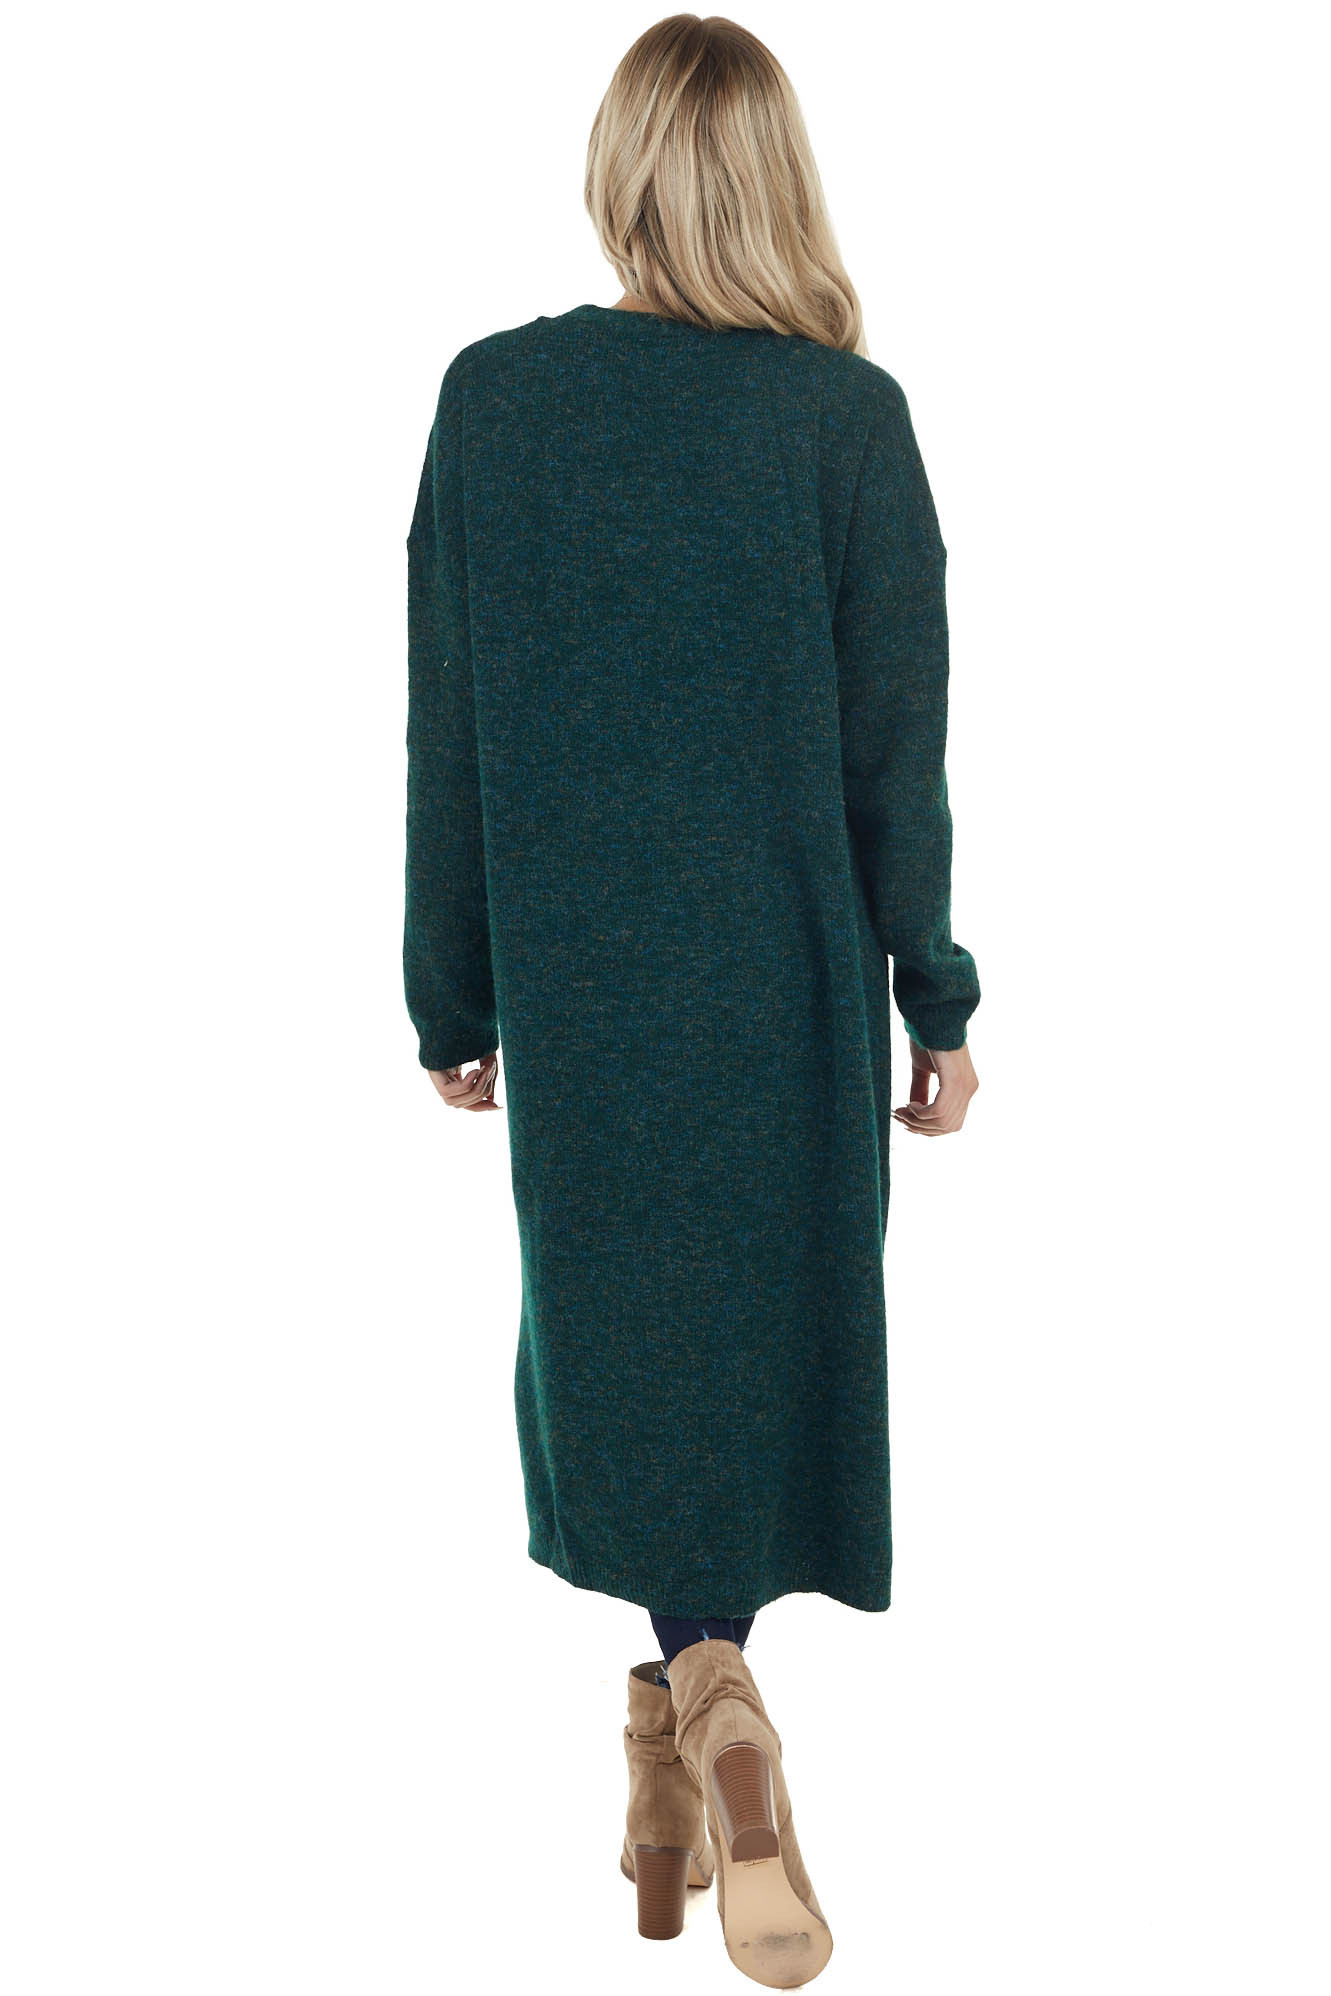 Hunter Green Duster Cardigan with Pockets and Side Slits